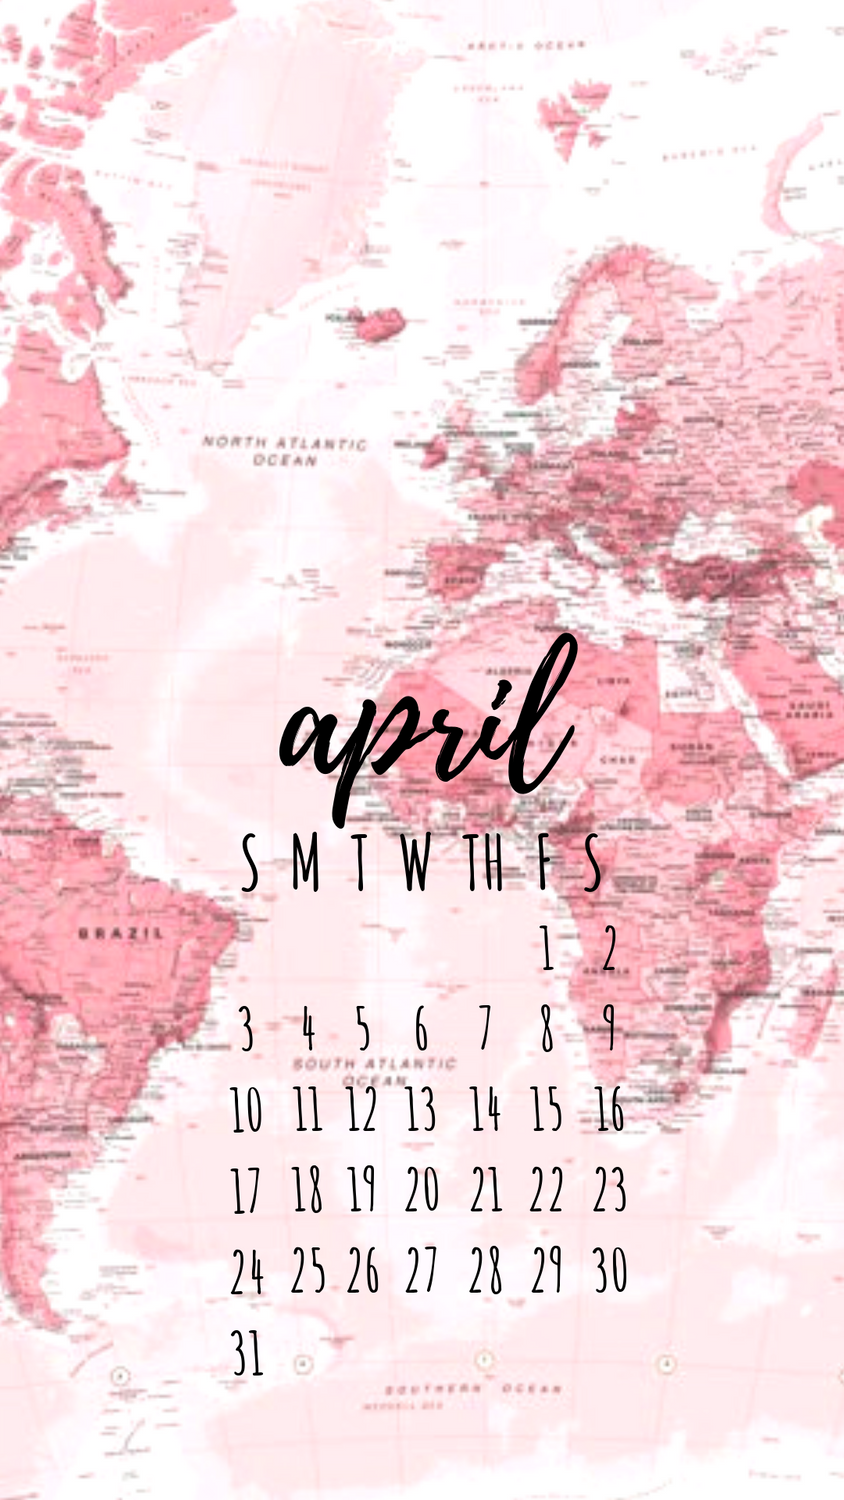 April 2019 Calendar Wallpaper Background Calendar Wallpaper